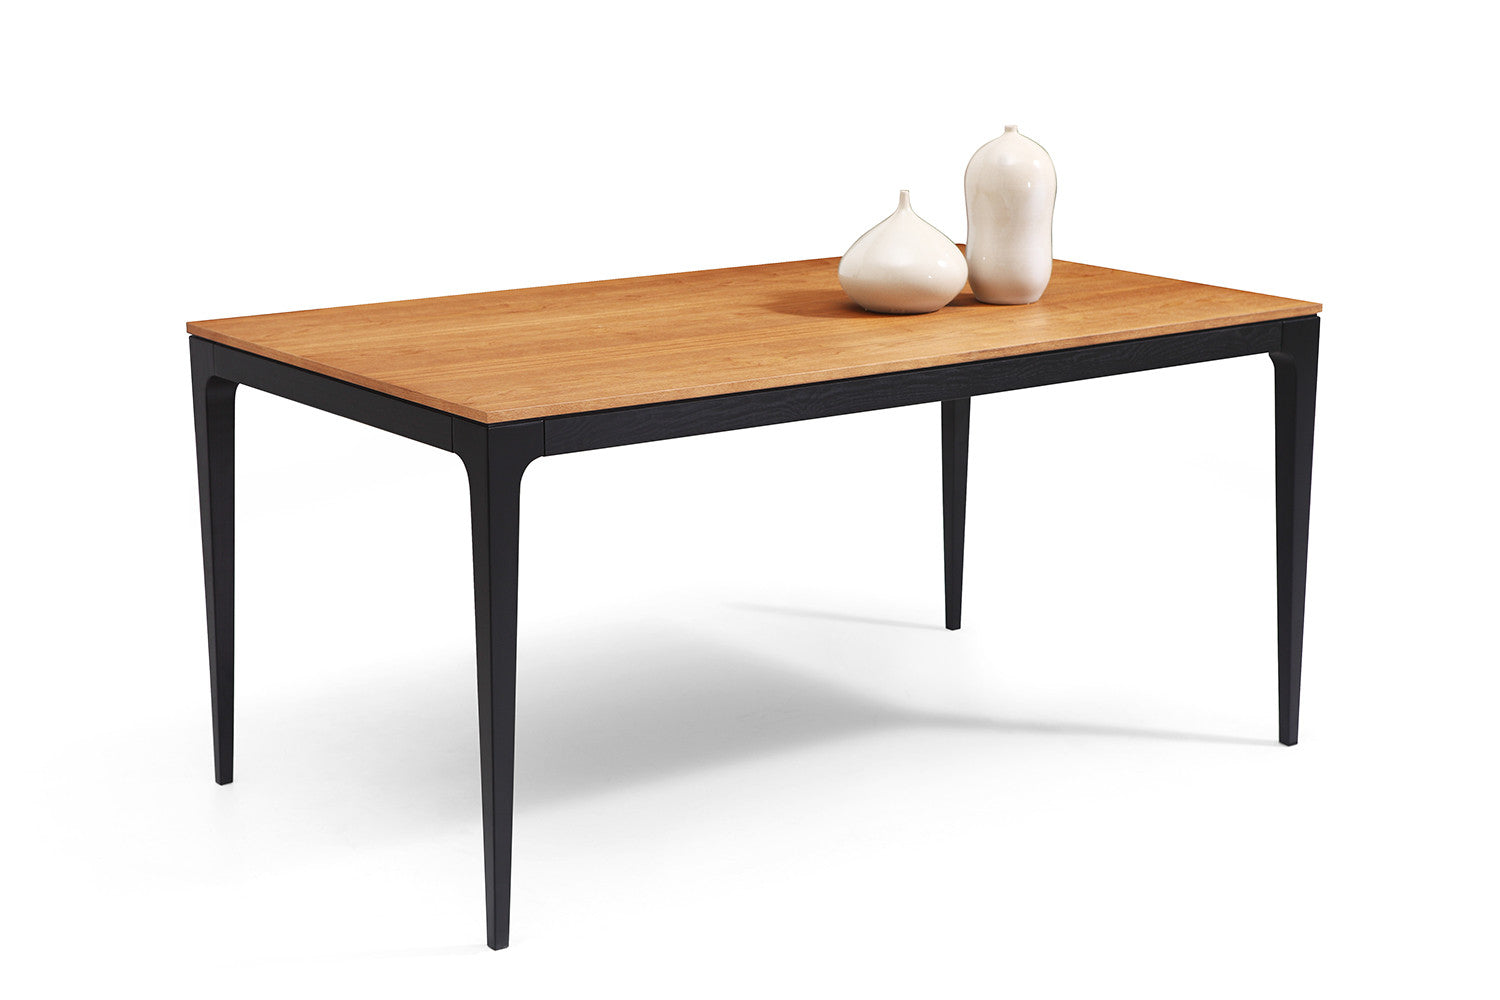 Table a manger design bois for Table en bois de salle a manger